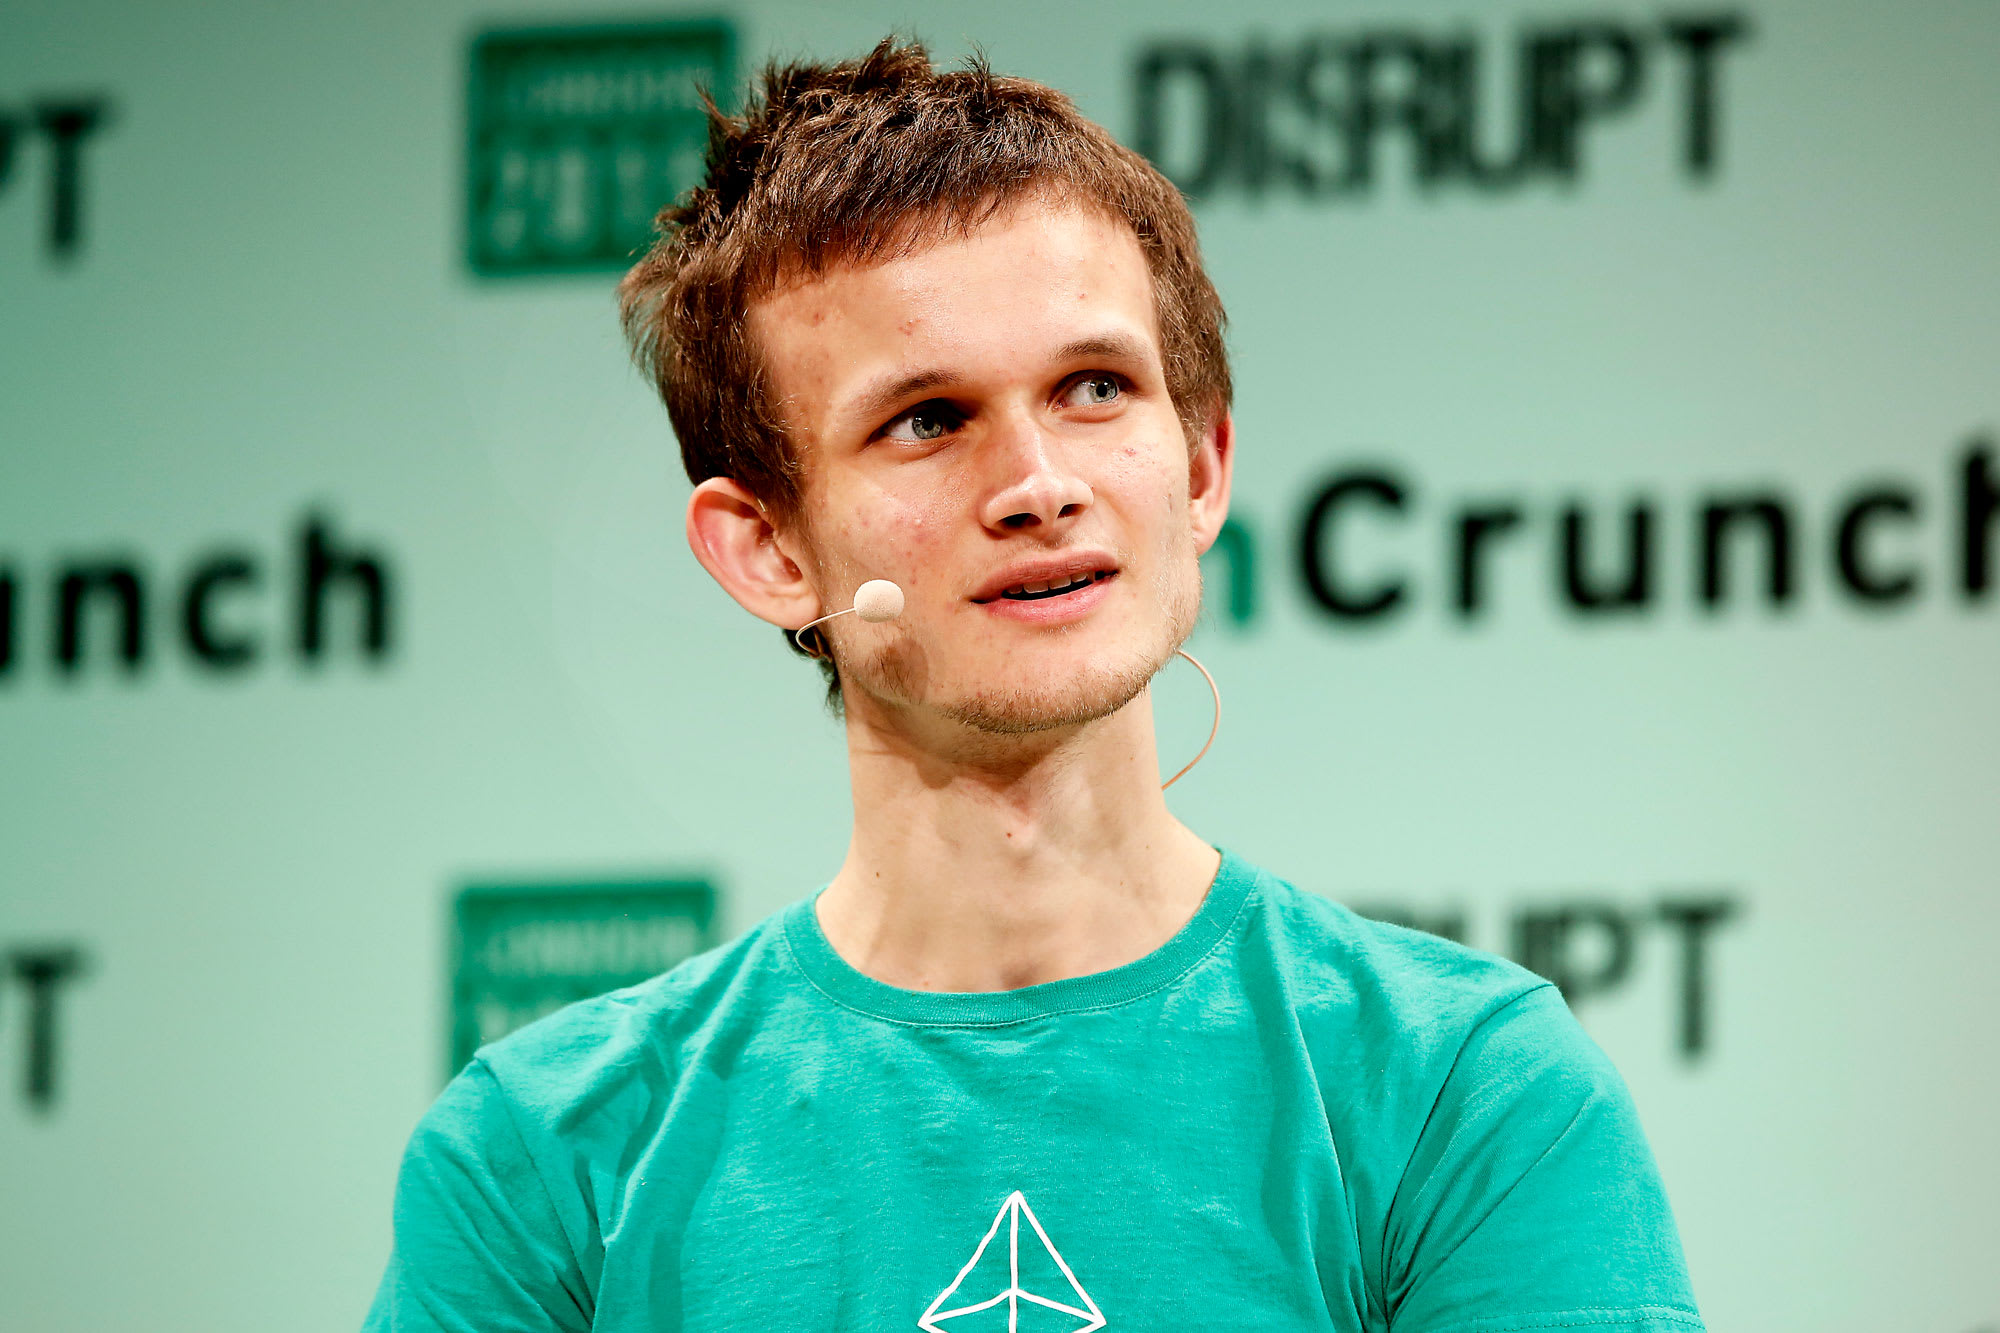 Ethereum Co-founder: We Underestimated How Long PoS Would Take to Finish